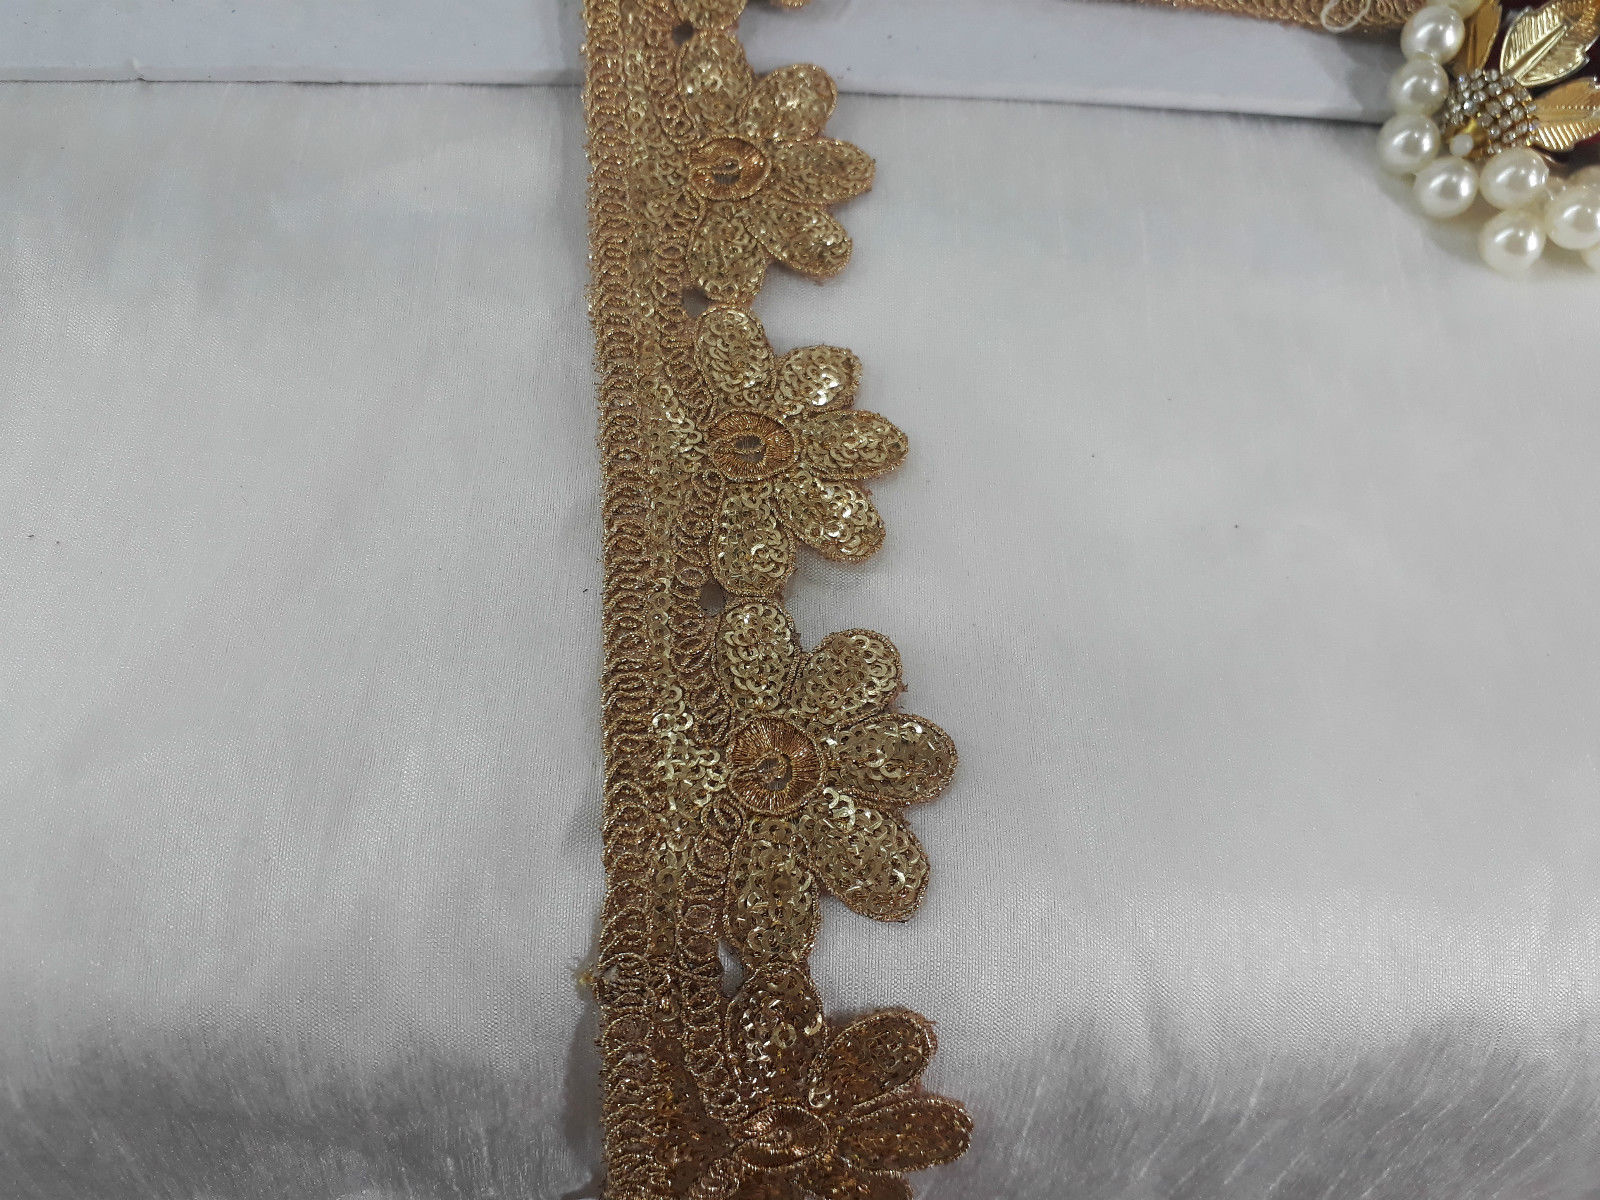 fabric trim with holes decorative lace trim Gold Gold Embroidery n Sequins Polyester Less than 2 inch